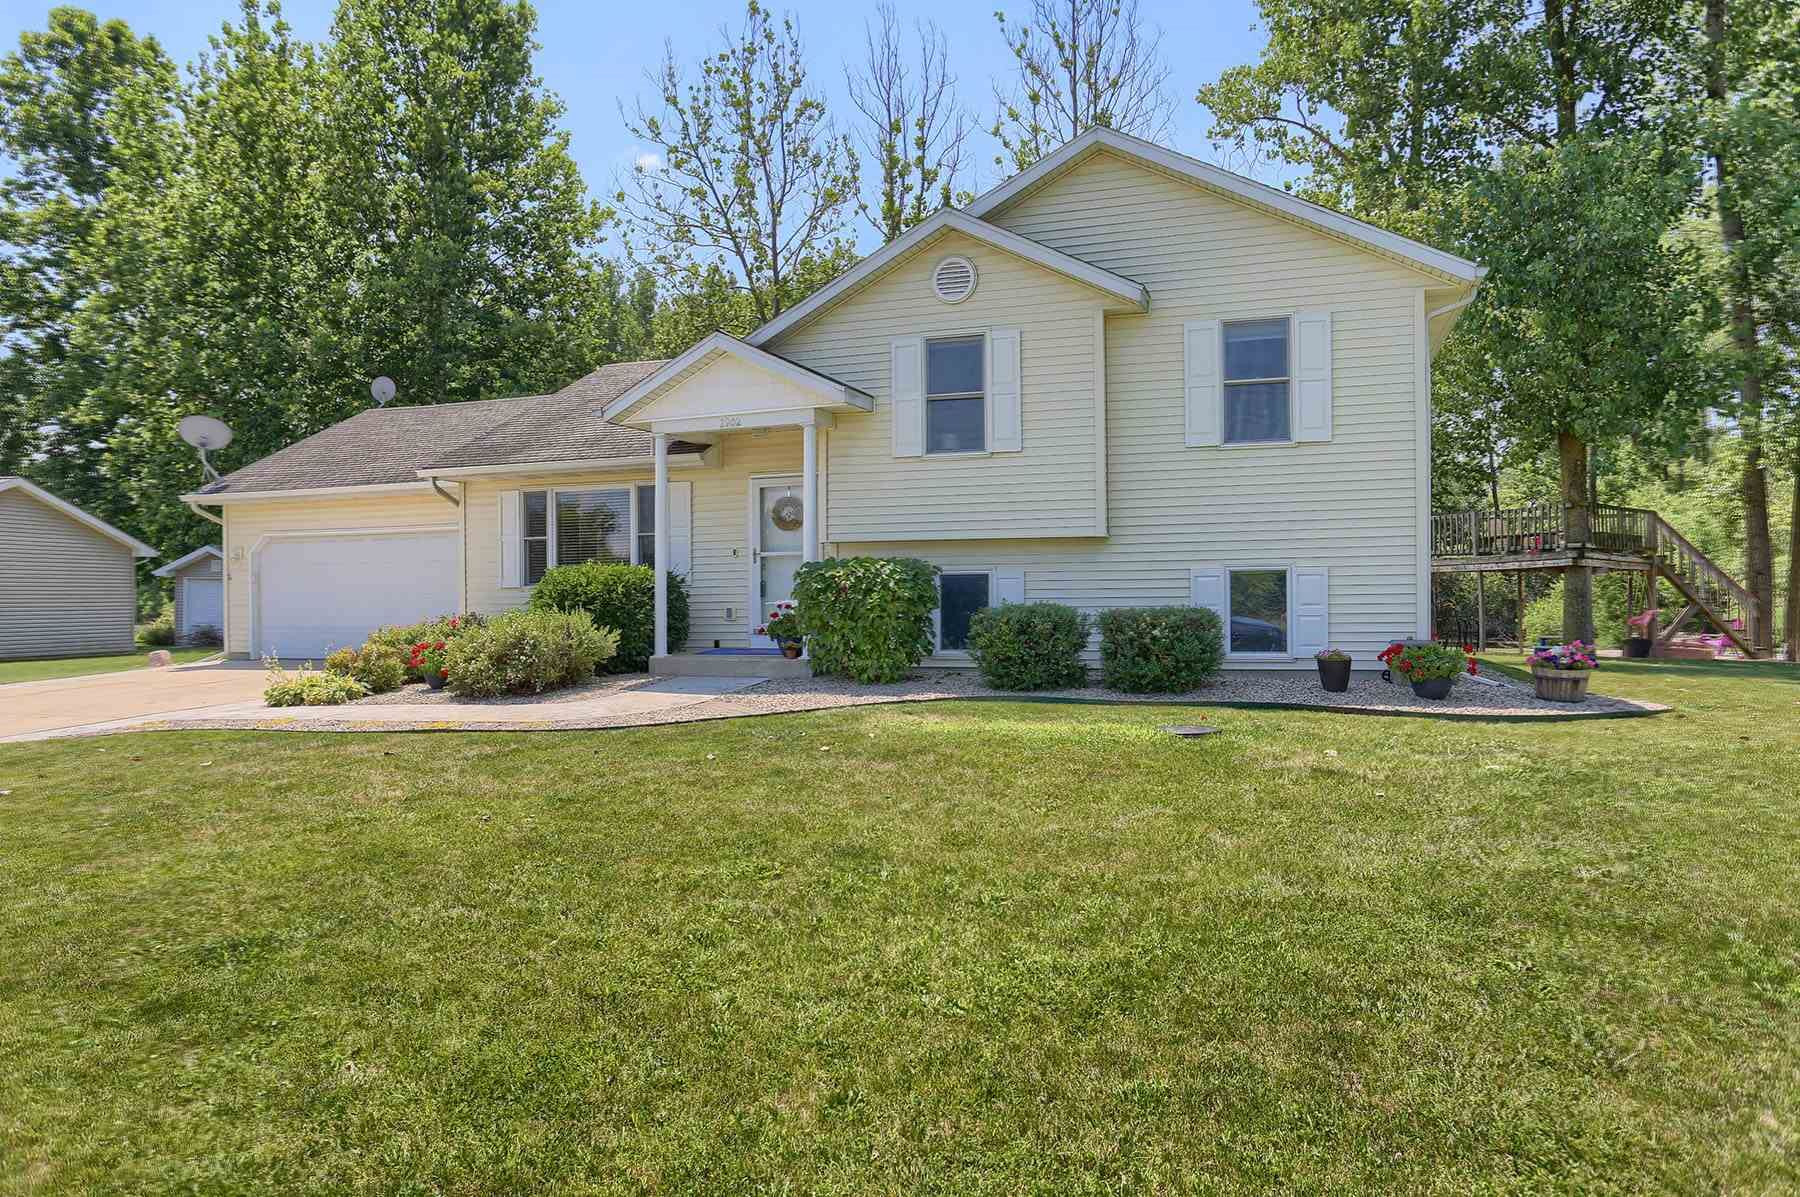 2902 Widaman Street, Winona Lake, IN 46590 - #: 202025680